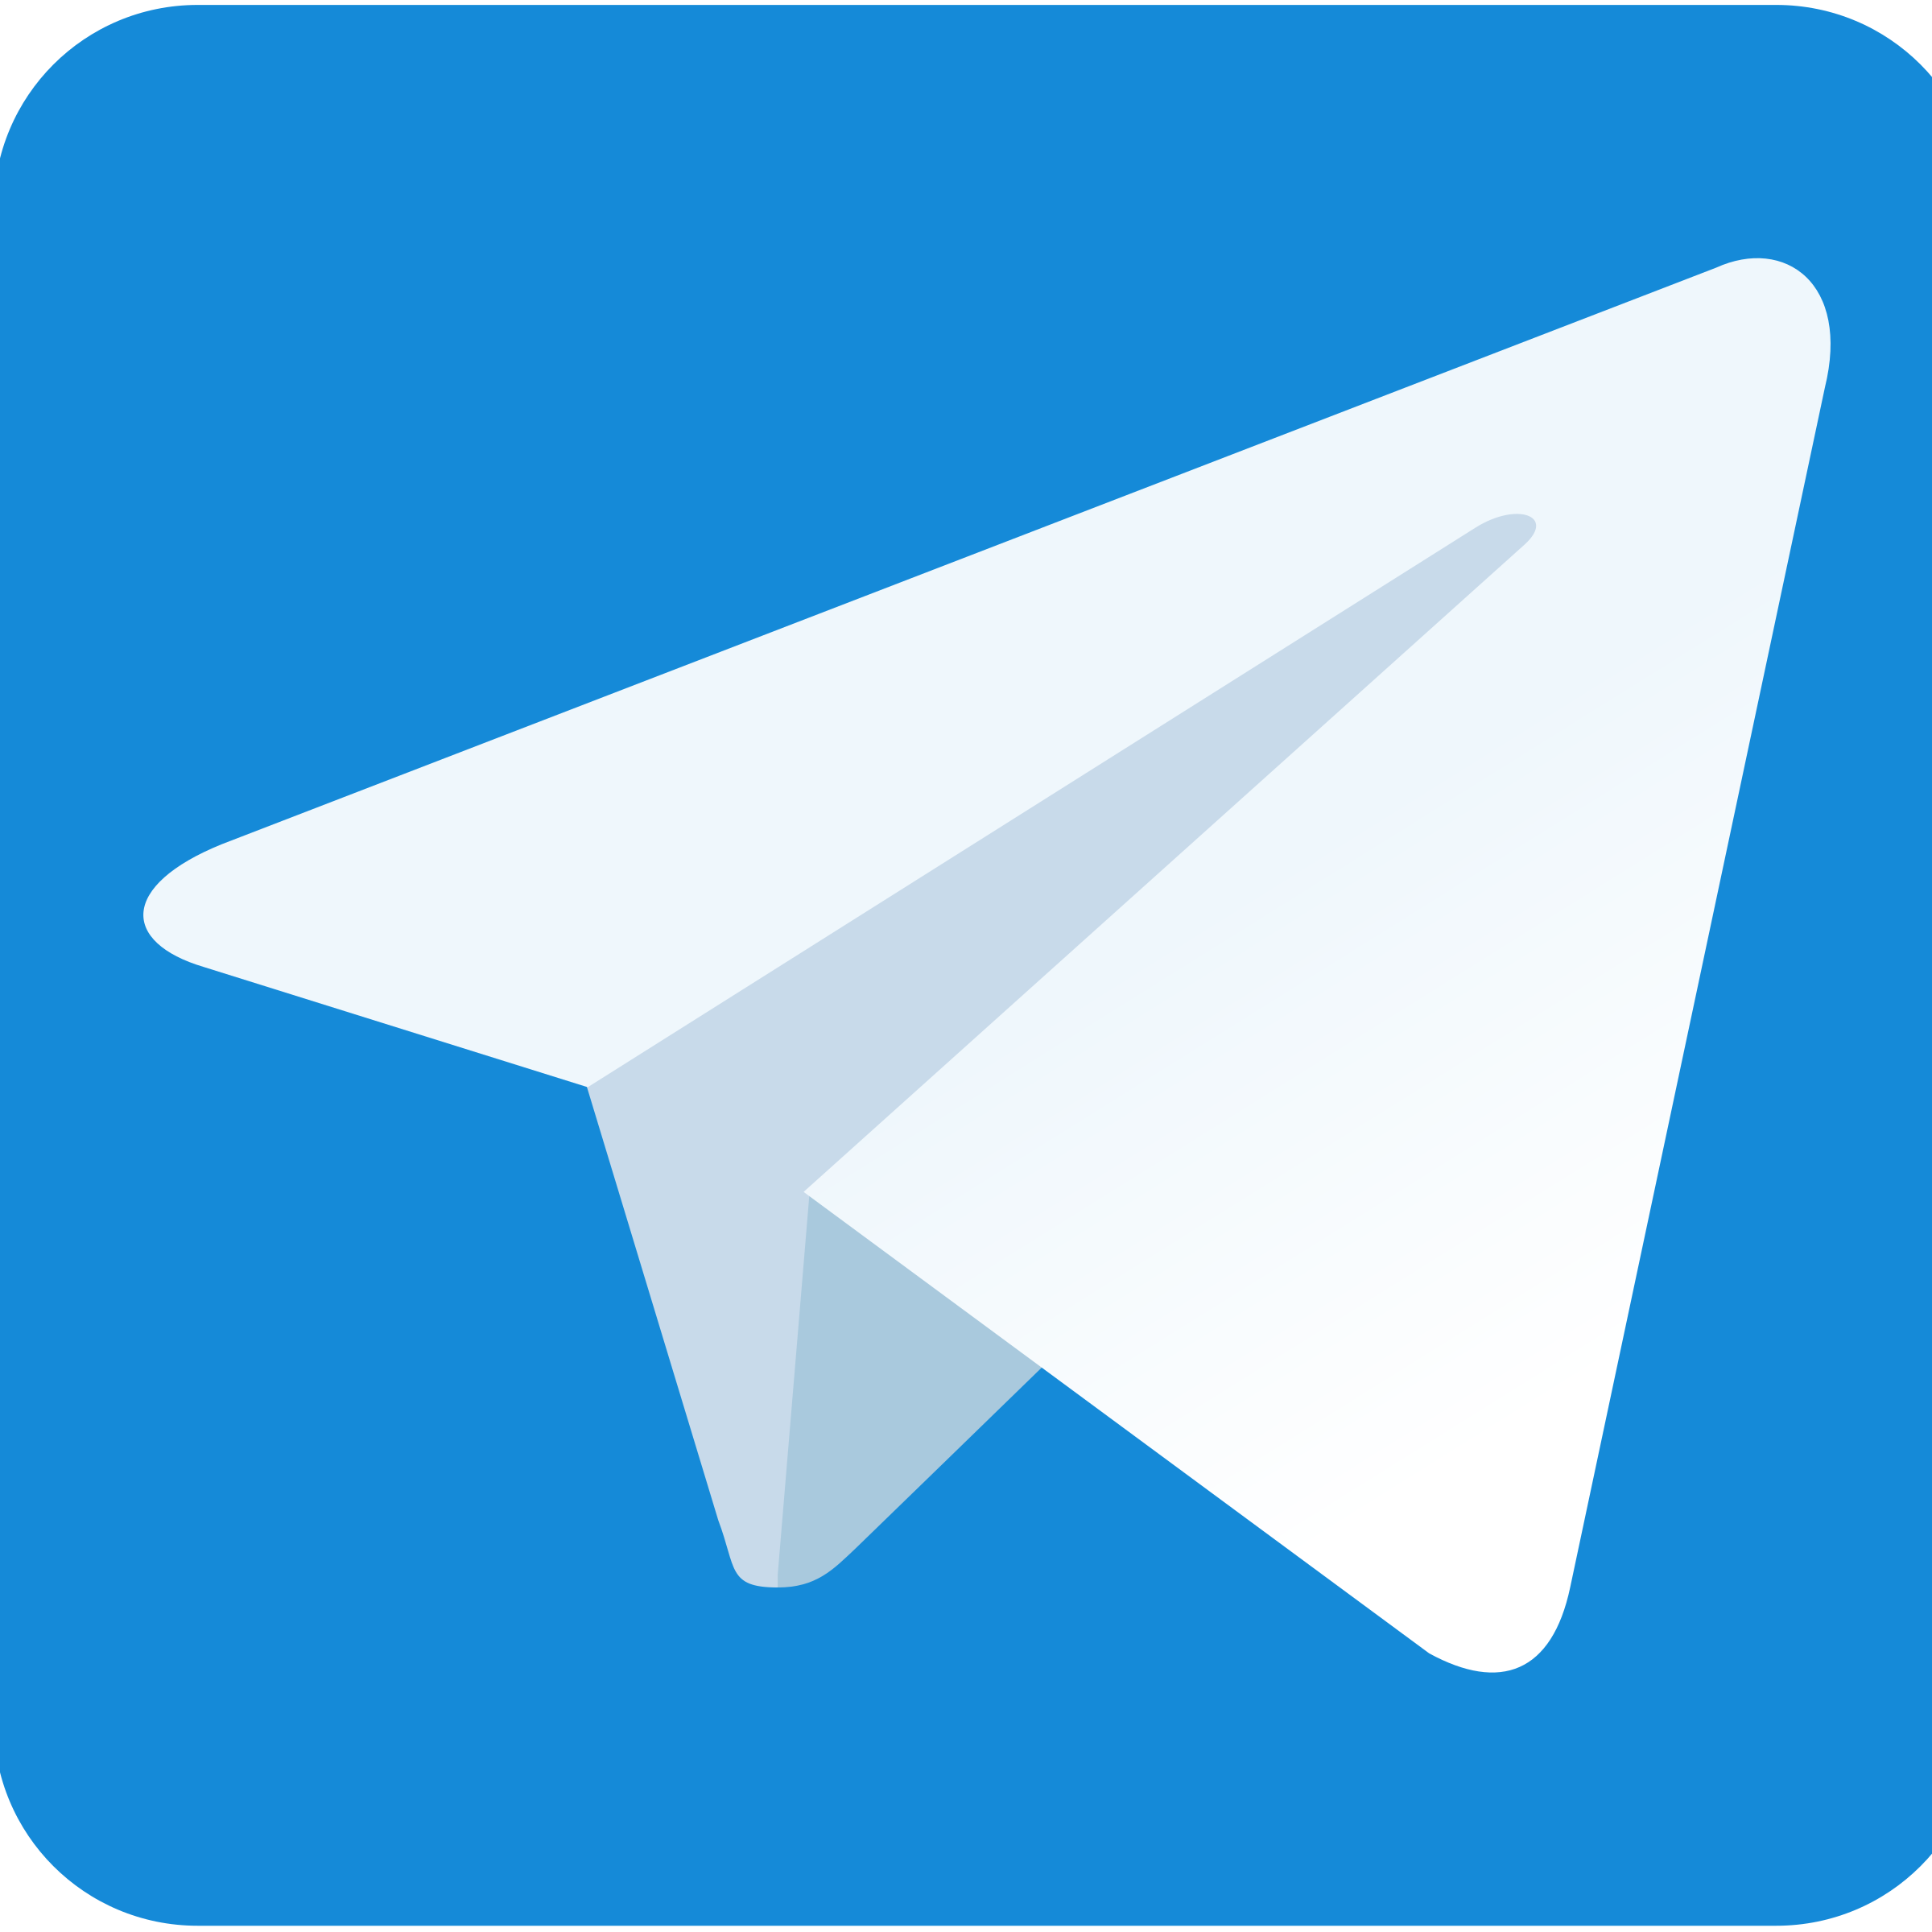 Telegram app icon by davidoclubb